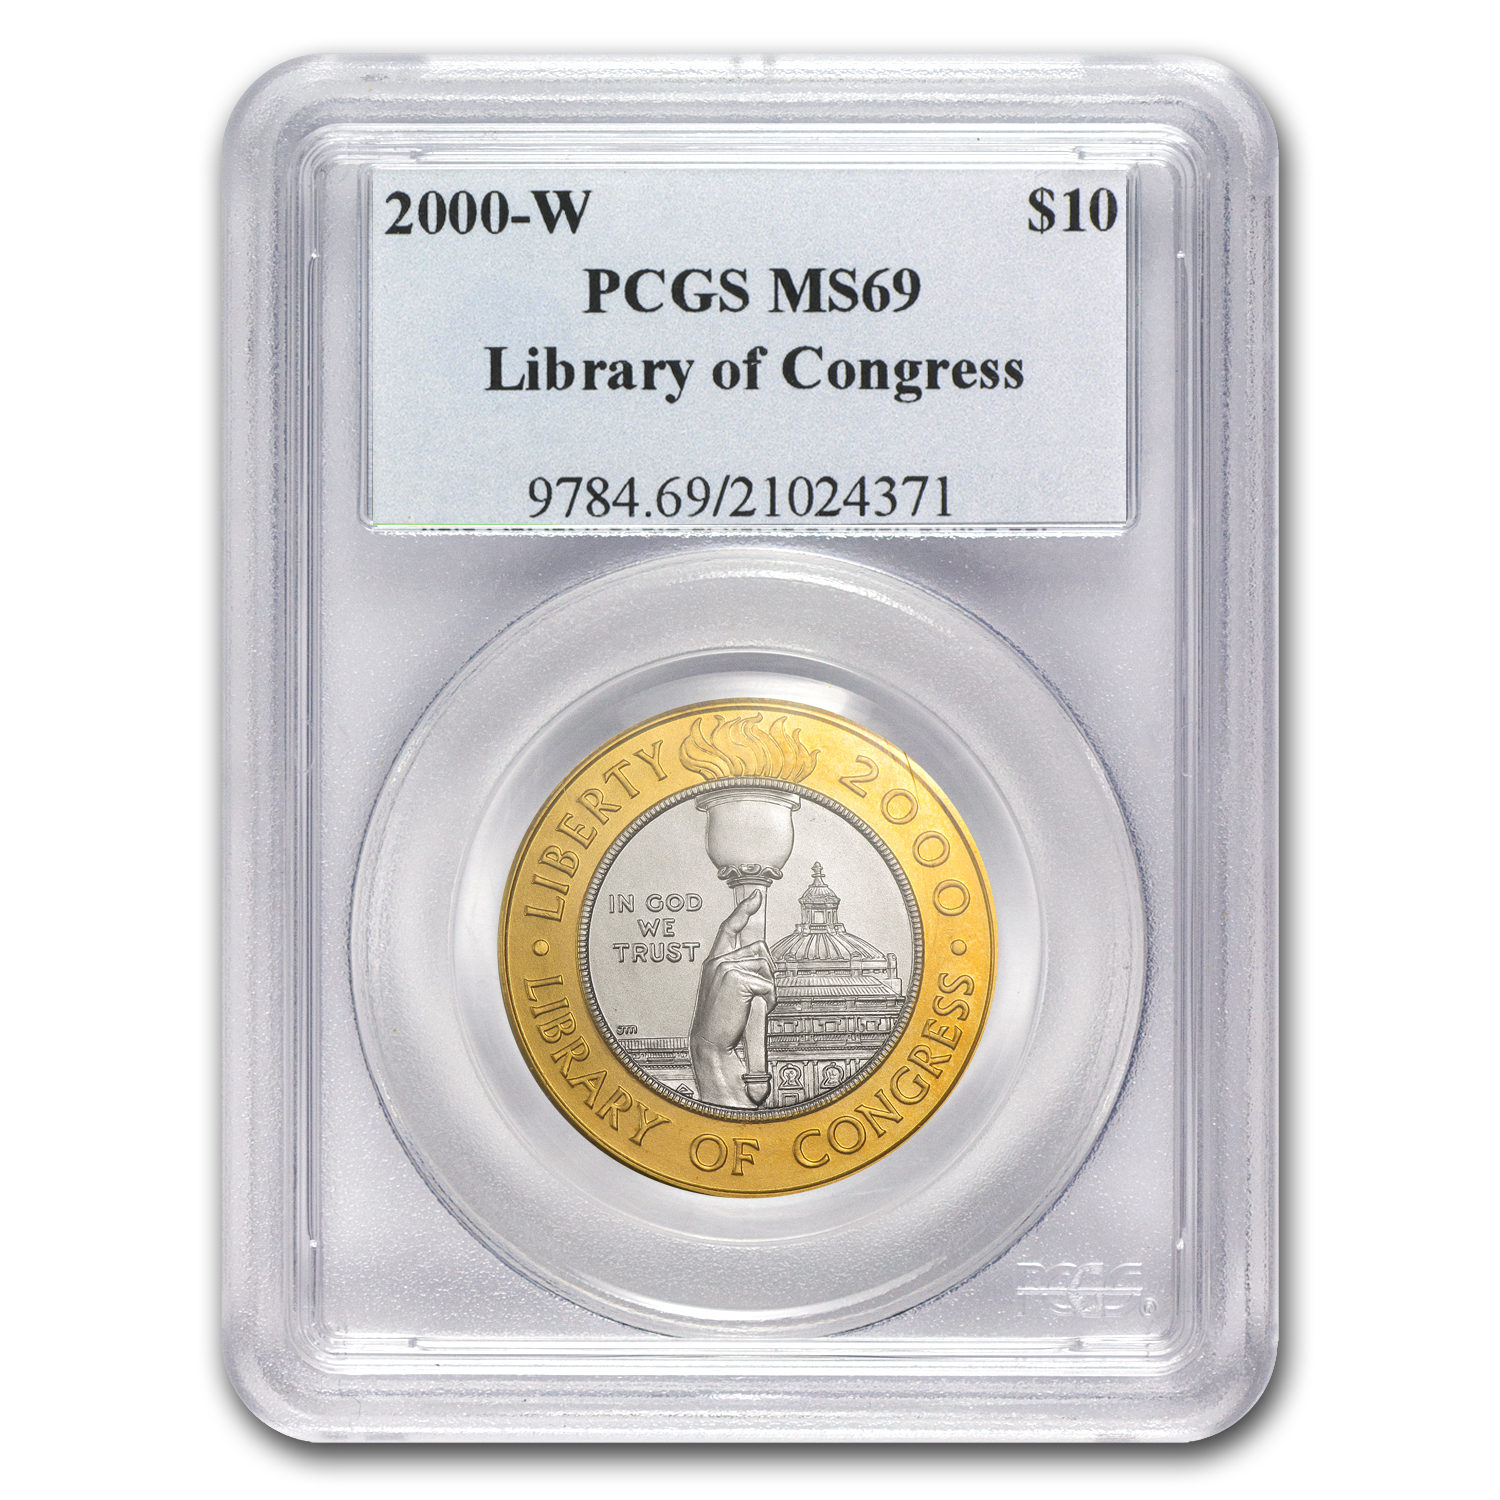 2000-W Gold/Platinum $10 Commem Library of Congress MS-69 PCGS